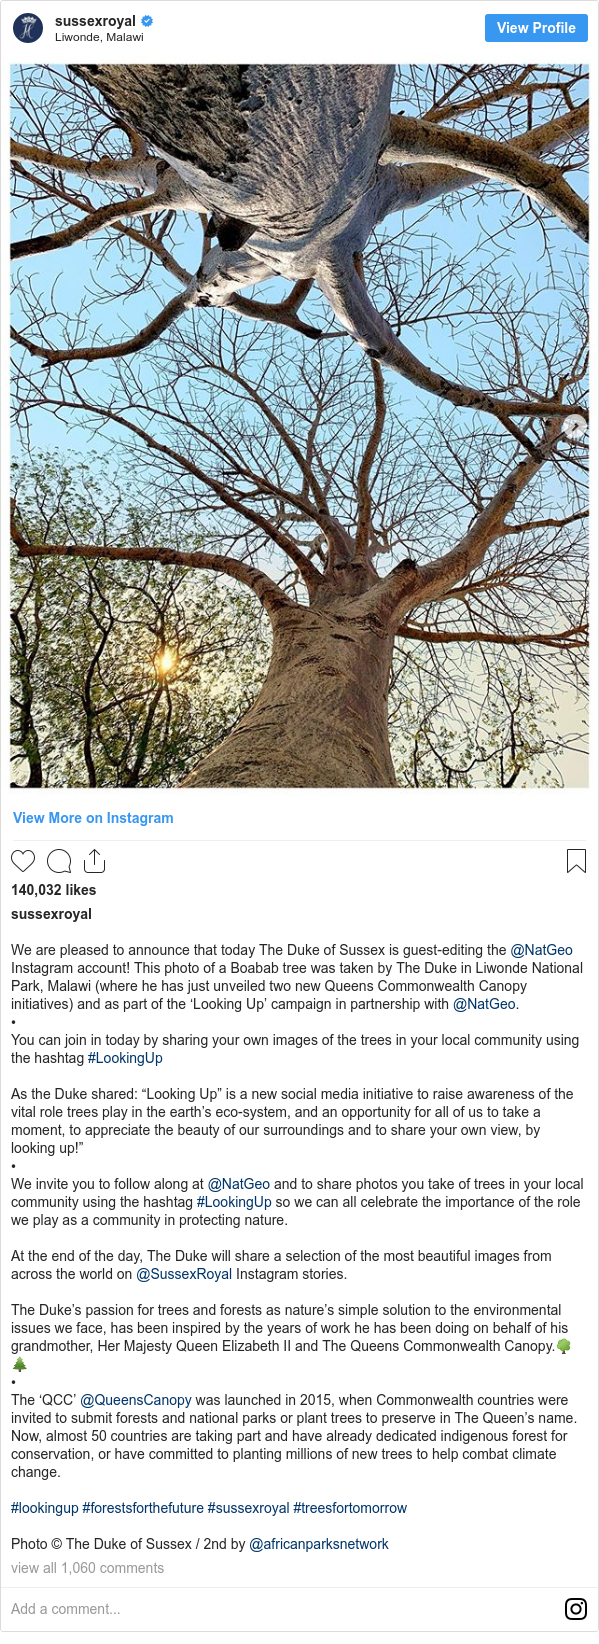 """Instagram post by sussexroyal: We are pleased to announce that today The Duke of Sussex is guest-editing the @NatGeo Instagram account! This photo of a Boabab tree was taken by The Duke in Liwonde National Park, Malawi (where he has just unveiled two new Queens Commonwealth Canopy initiatives) and as part of the 'Looking Up' campaign in partnership with @NatGeo. • You can join in today by sharing your own images of the trees in your local community using the hashtag #LookingUp  As the Duke shared  """"Looking Up"""" is a new social media initiative to raise awareness of the vital role trees play in the earth's eco-system, and an opportunity for all of us to take a moment, to appreciate the beauty of our surroundings and to share your own view, by looking up!"""" • We invite you to follow along at @NatGeo and to share photos you take of trees in your local community using the hashtag #LookingUp so we can all celebrate the importance of the role we play as a community in protecting nature.  At the end of the day, The Duke will share a selection of the most beautiful images from across the world on @SussexRoyal Instagram stories.  The Duke's passion for trees and forests as nature's simple solution to the environmental issues we face, has been inspired by the years of work he has been doing on behalf of his grandmother, Her Majesty Queen Elizabeth II and The Queens Commonwealth Canopy.🌳🌲 •  The 'QCC' @QueensCanopy was launched in 2015, when Commonwealth countries were invited to submit forests and national parks or plant trees to preserve in The Queen's name. Now, almost 50 countries are taking part and have already dedicated indigenous forest for conservation, or have committed to planting millions of new trees to help combat climate change.  #lookingup #forestsforthefuture #sussexroyal #treesfortomorrow  Photo © The Duke of Sussex / 2nd by @africanparksnetwork"""